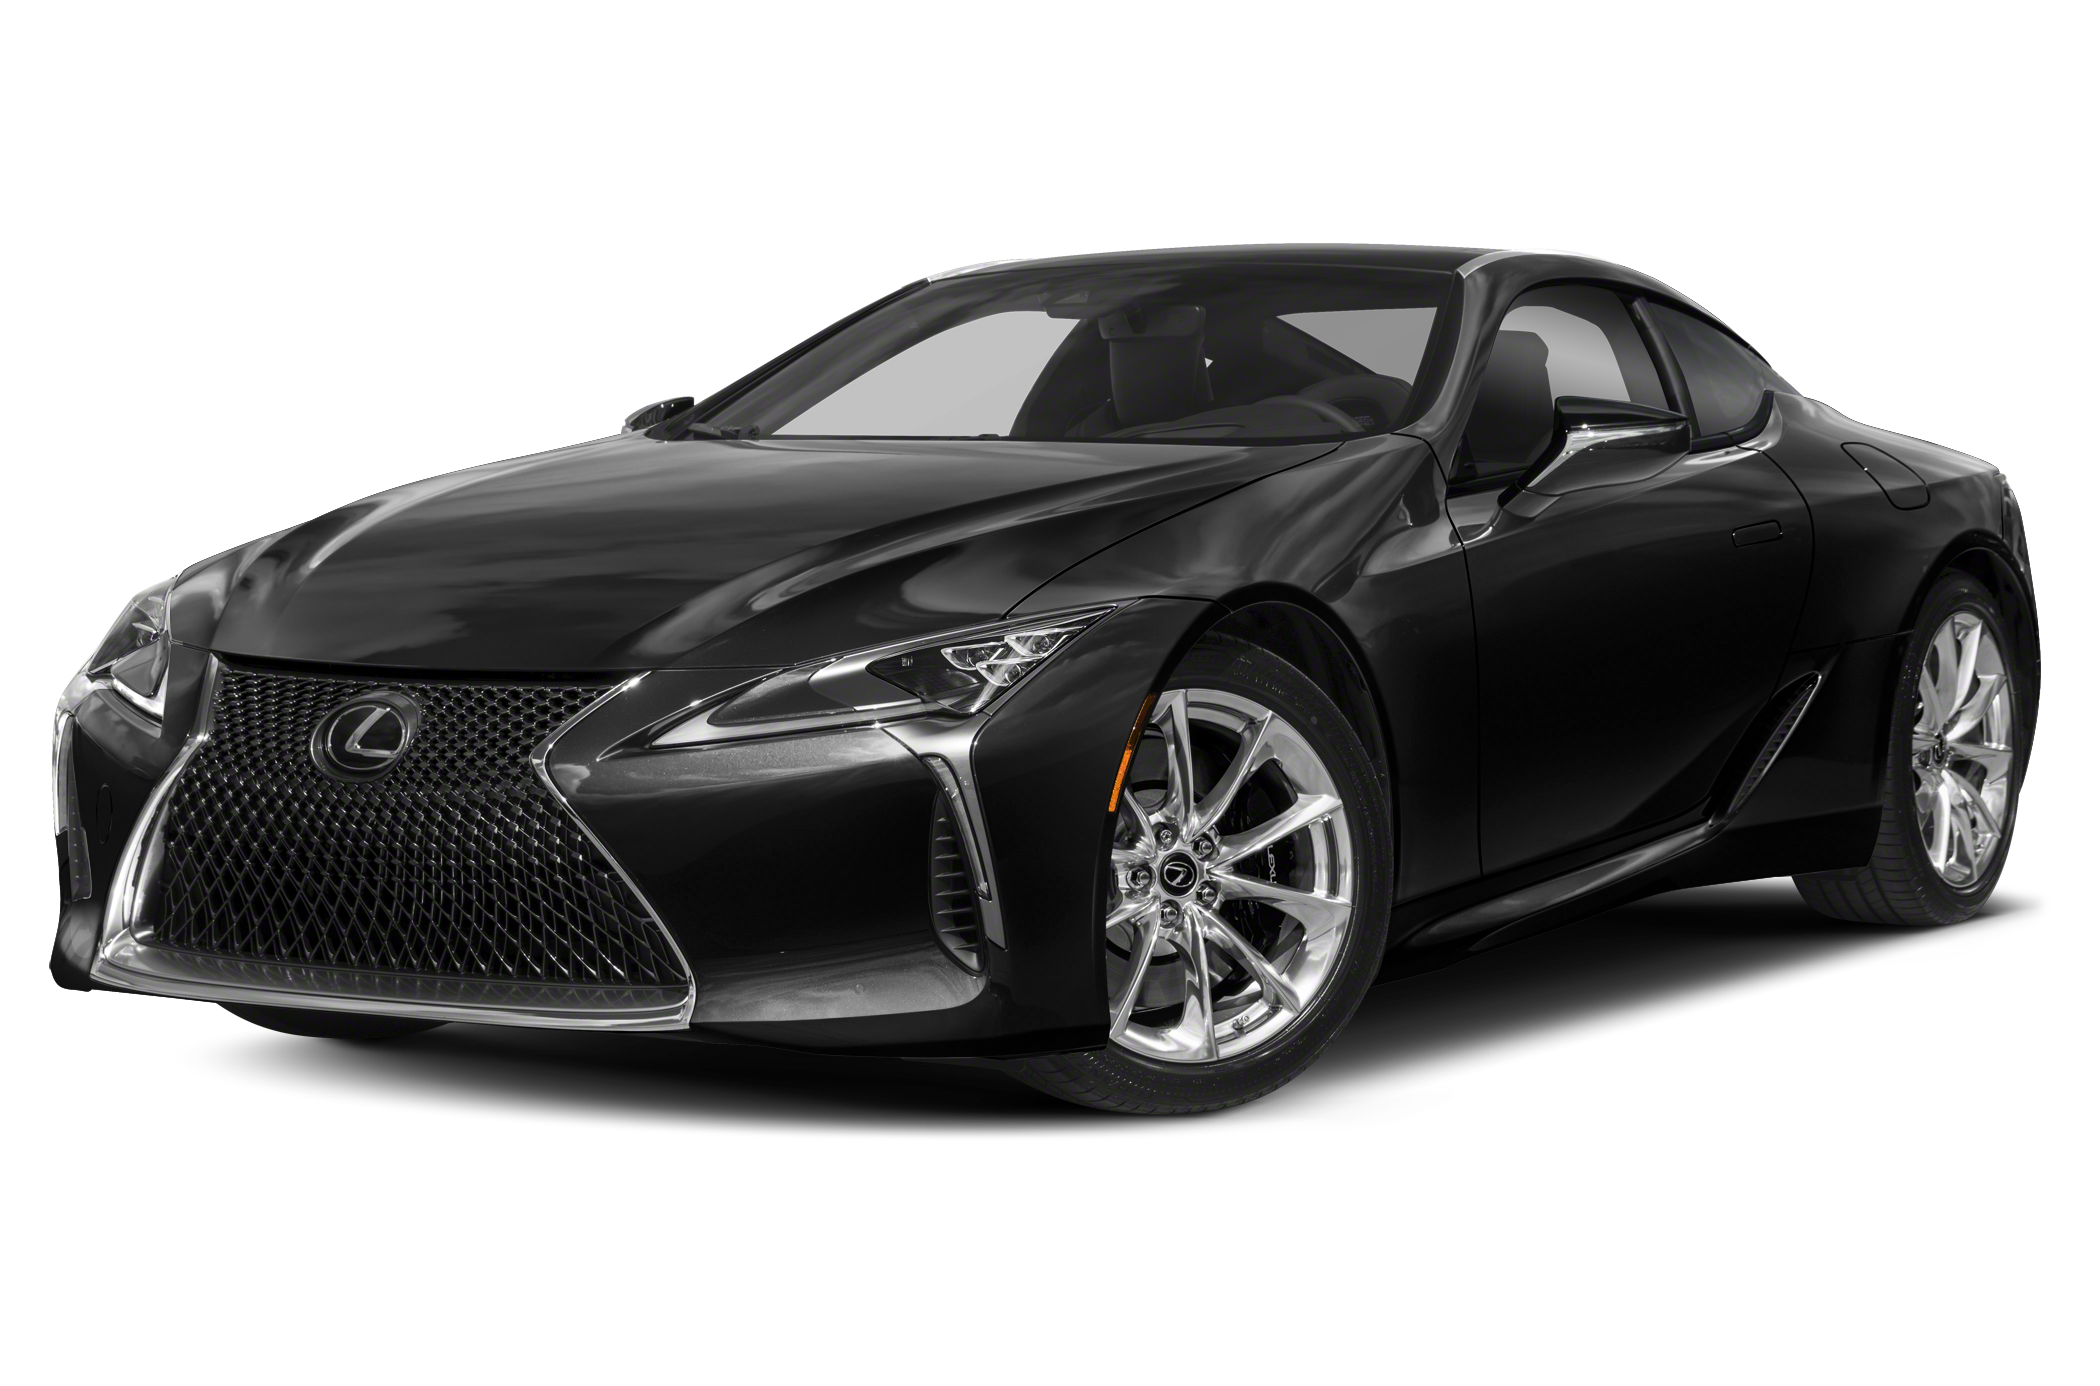 sonic paint deals ultra lexus blue special rc offers lease mica and